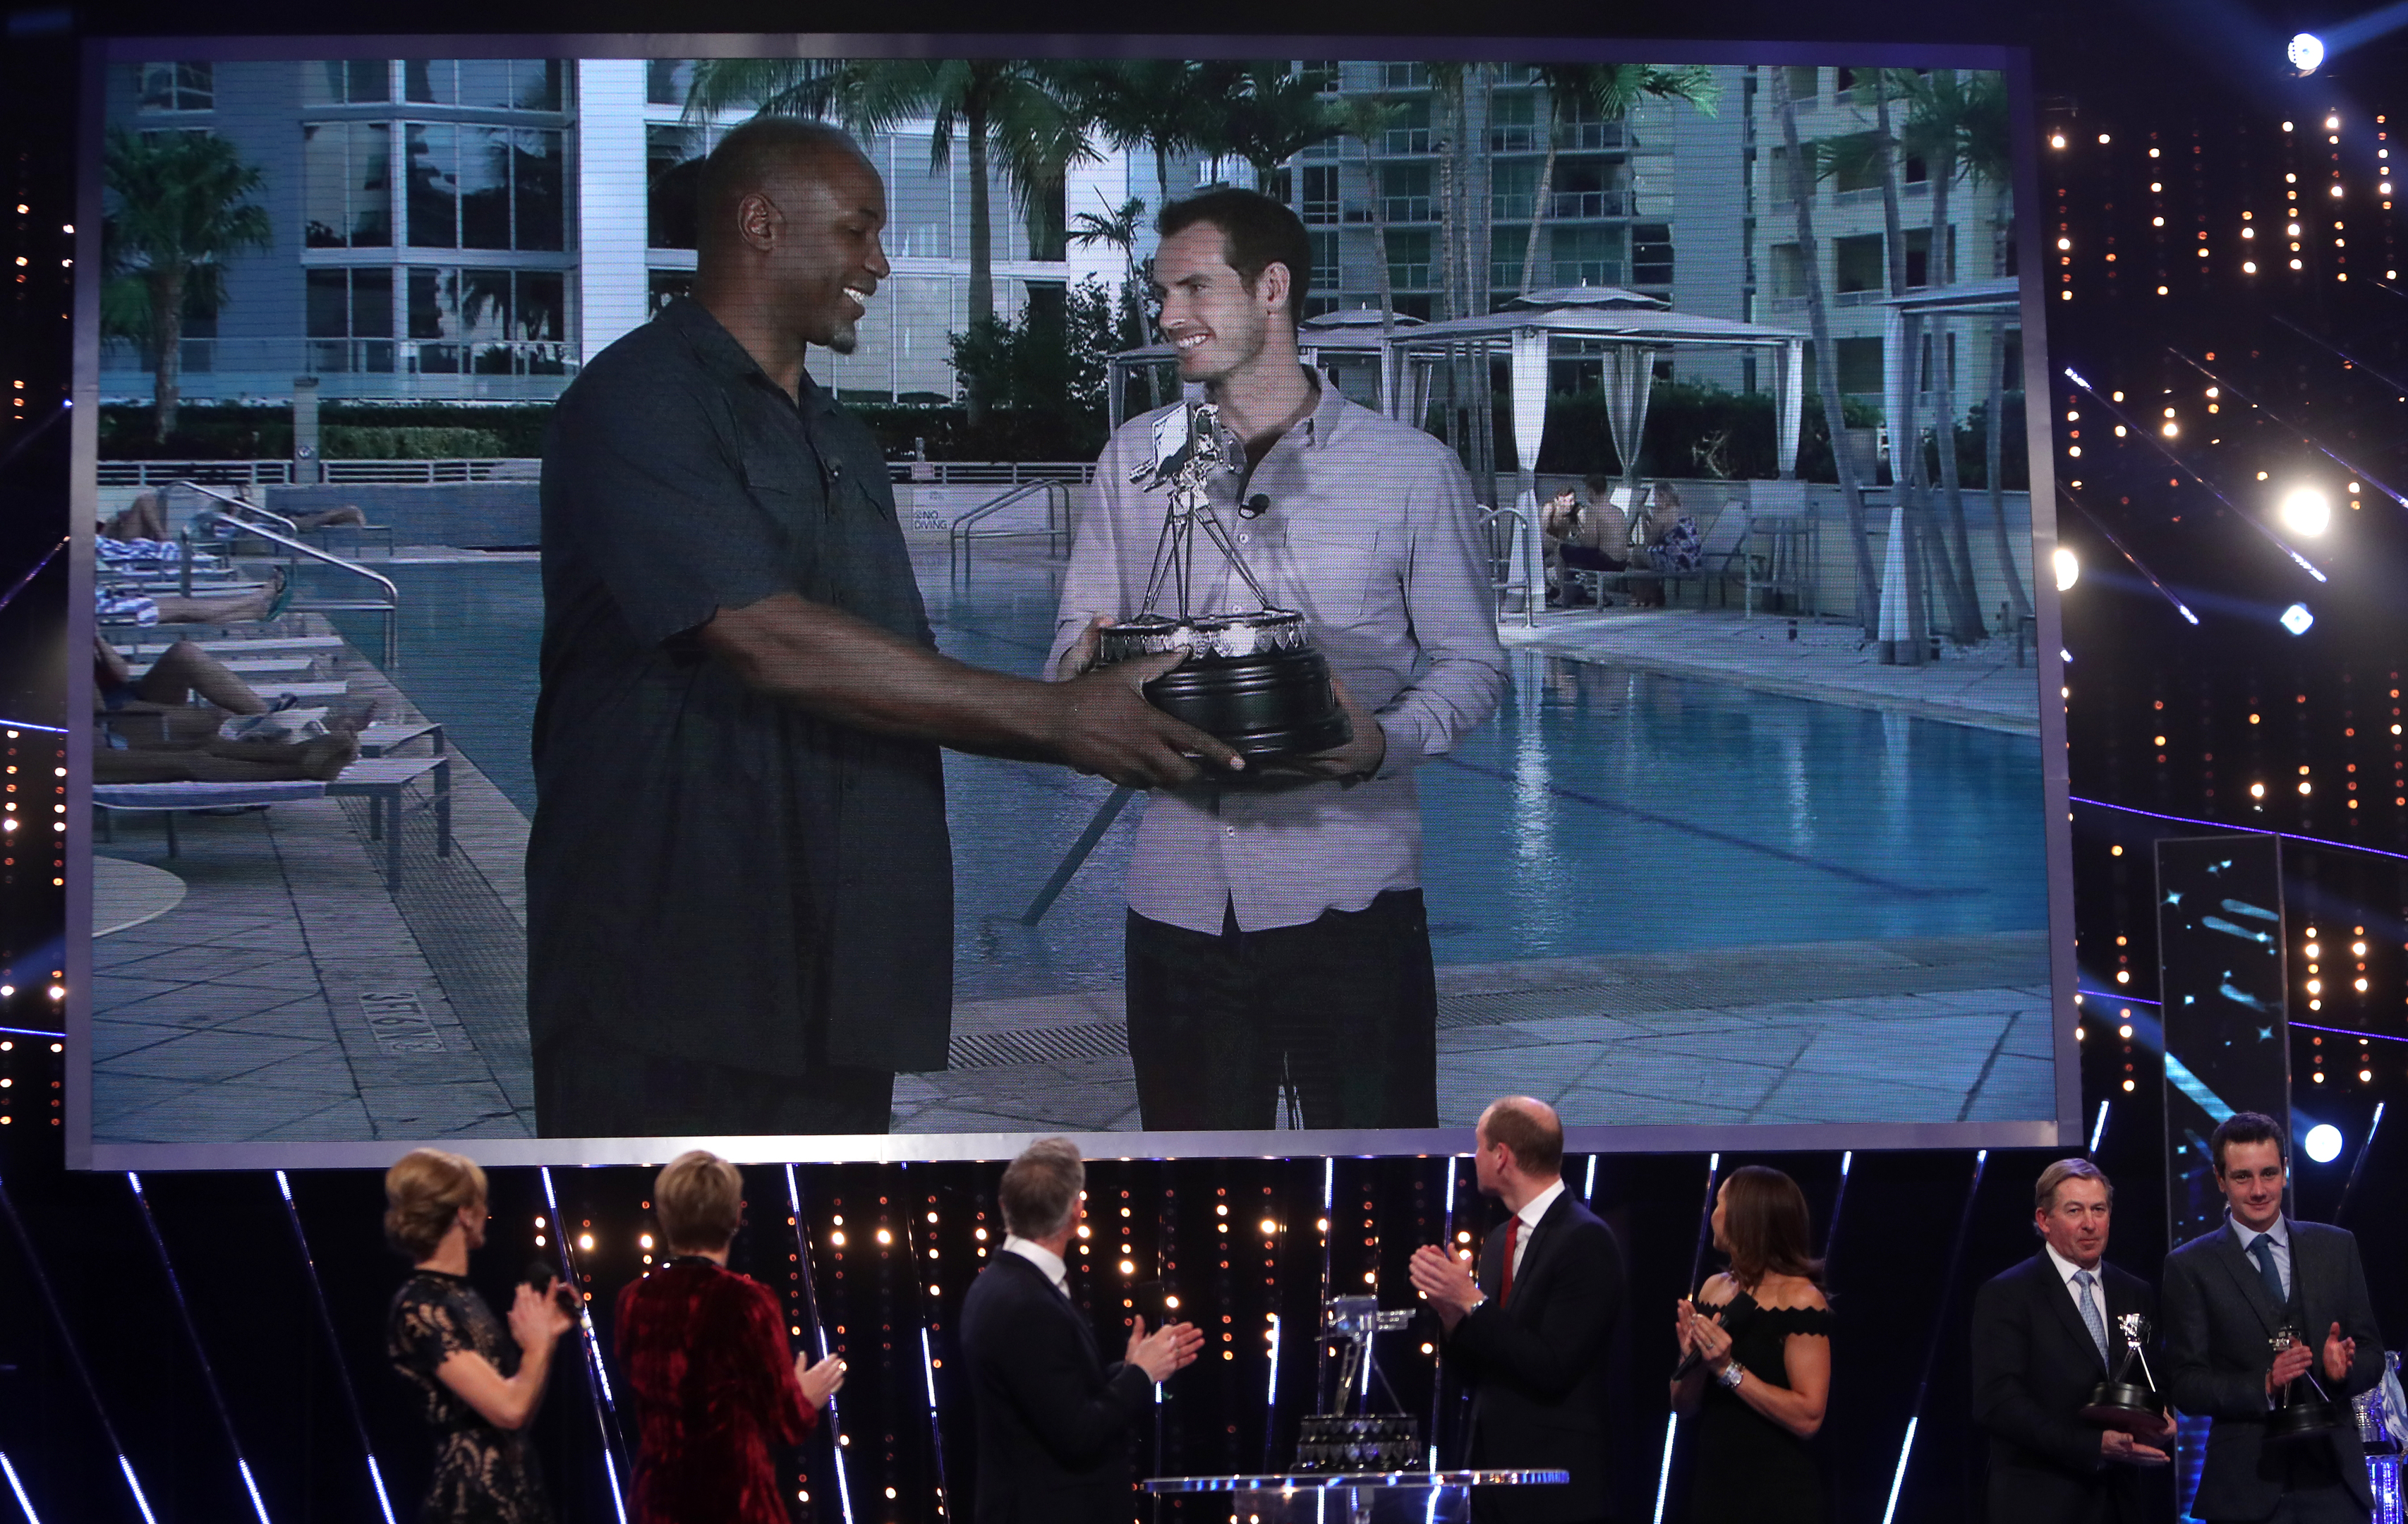 Andy Murray receives the Sports Personality of the Year award from Lennox Lewis.